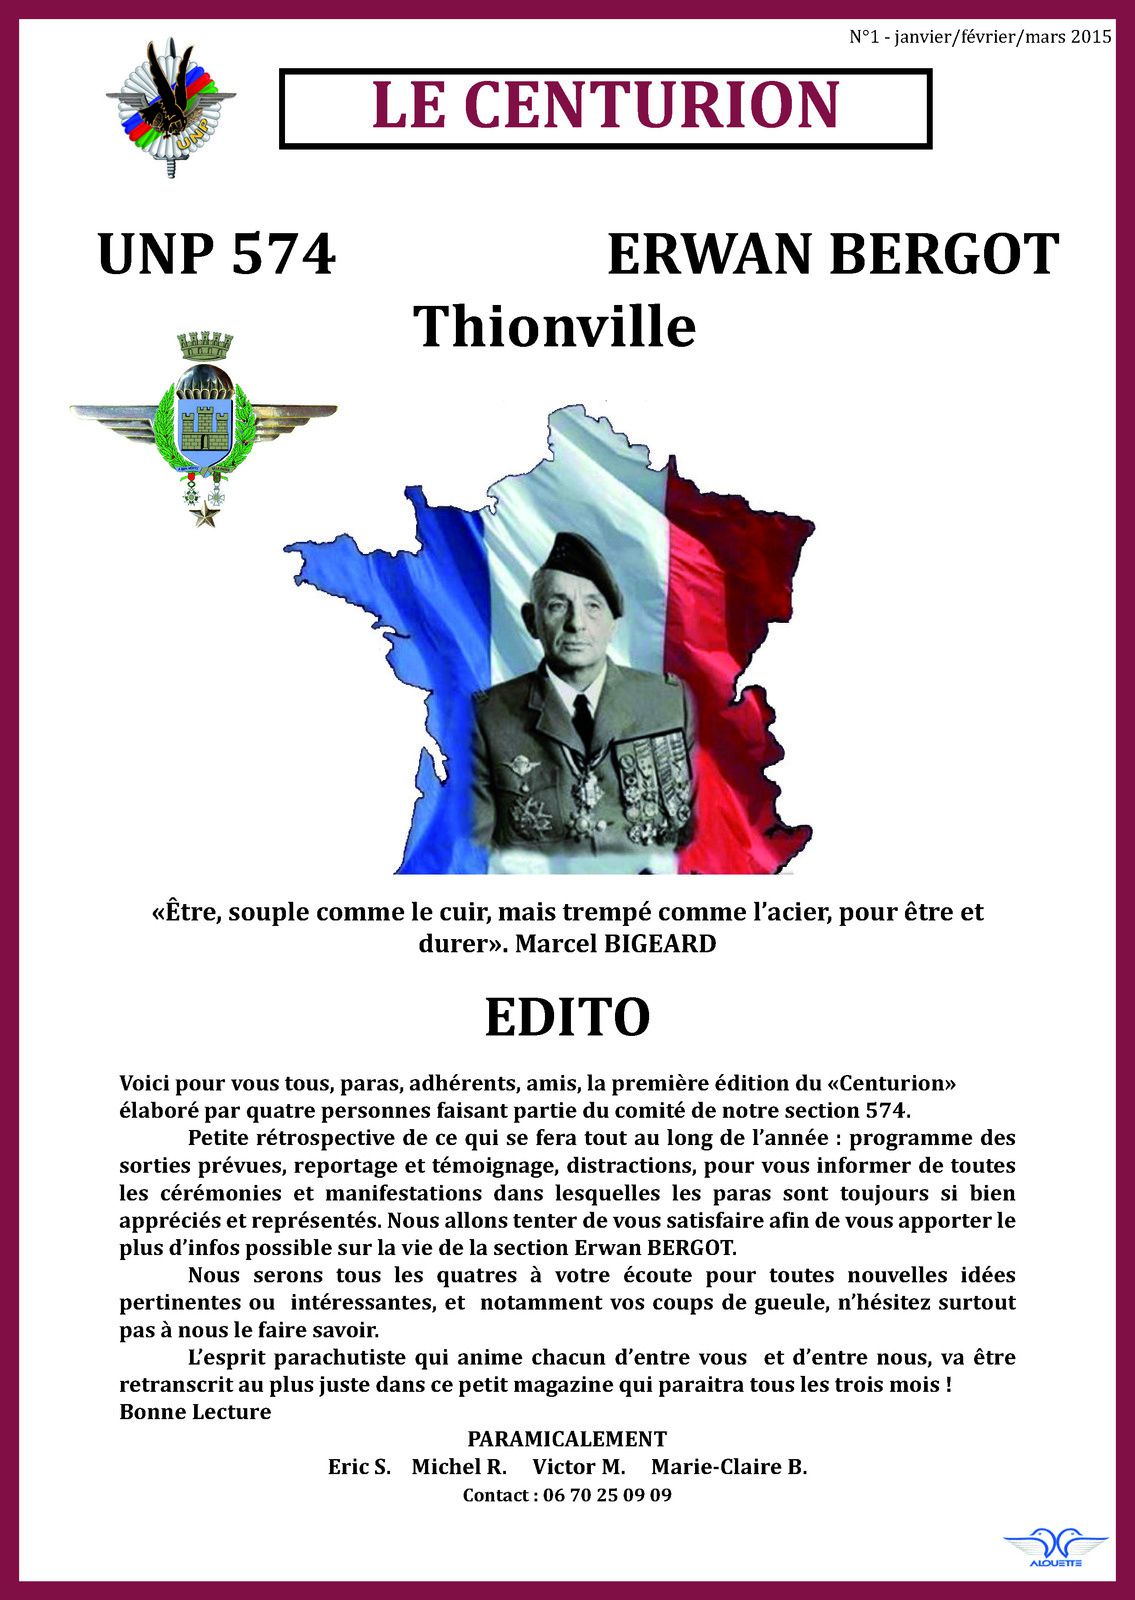 Centurion n°1 et 2 - Le journal de la section 574